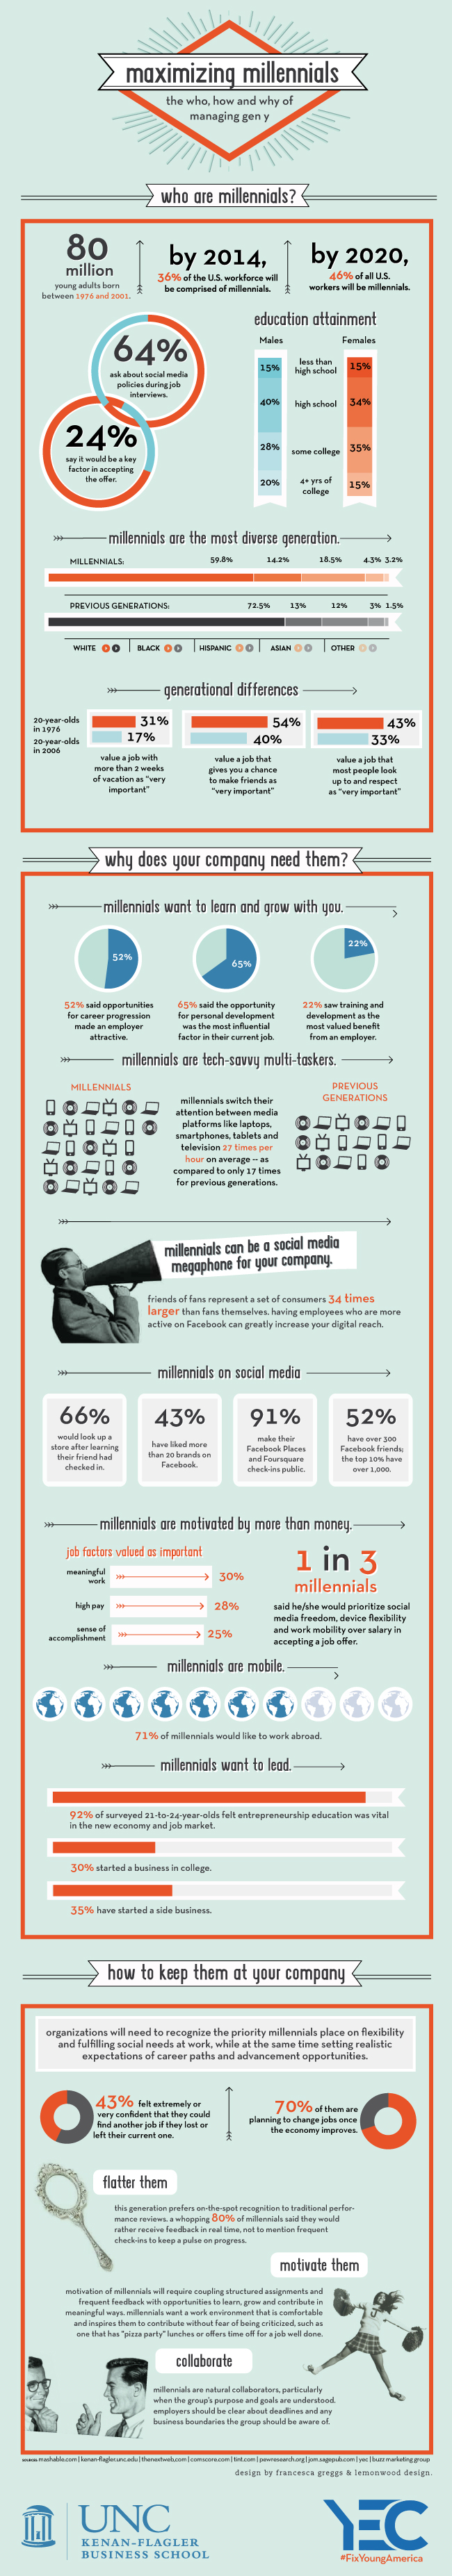 geny-in-the-workplace-infographic-mba-at-unc